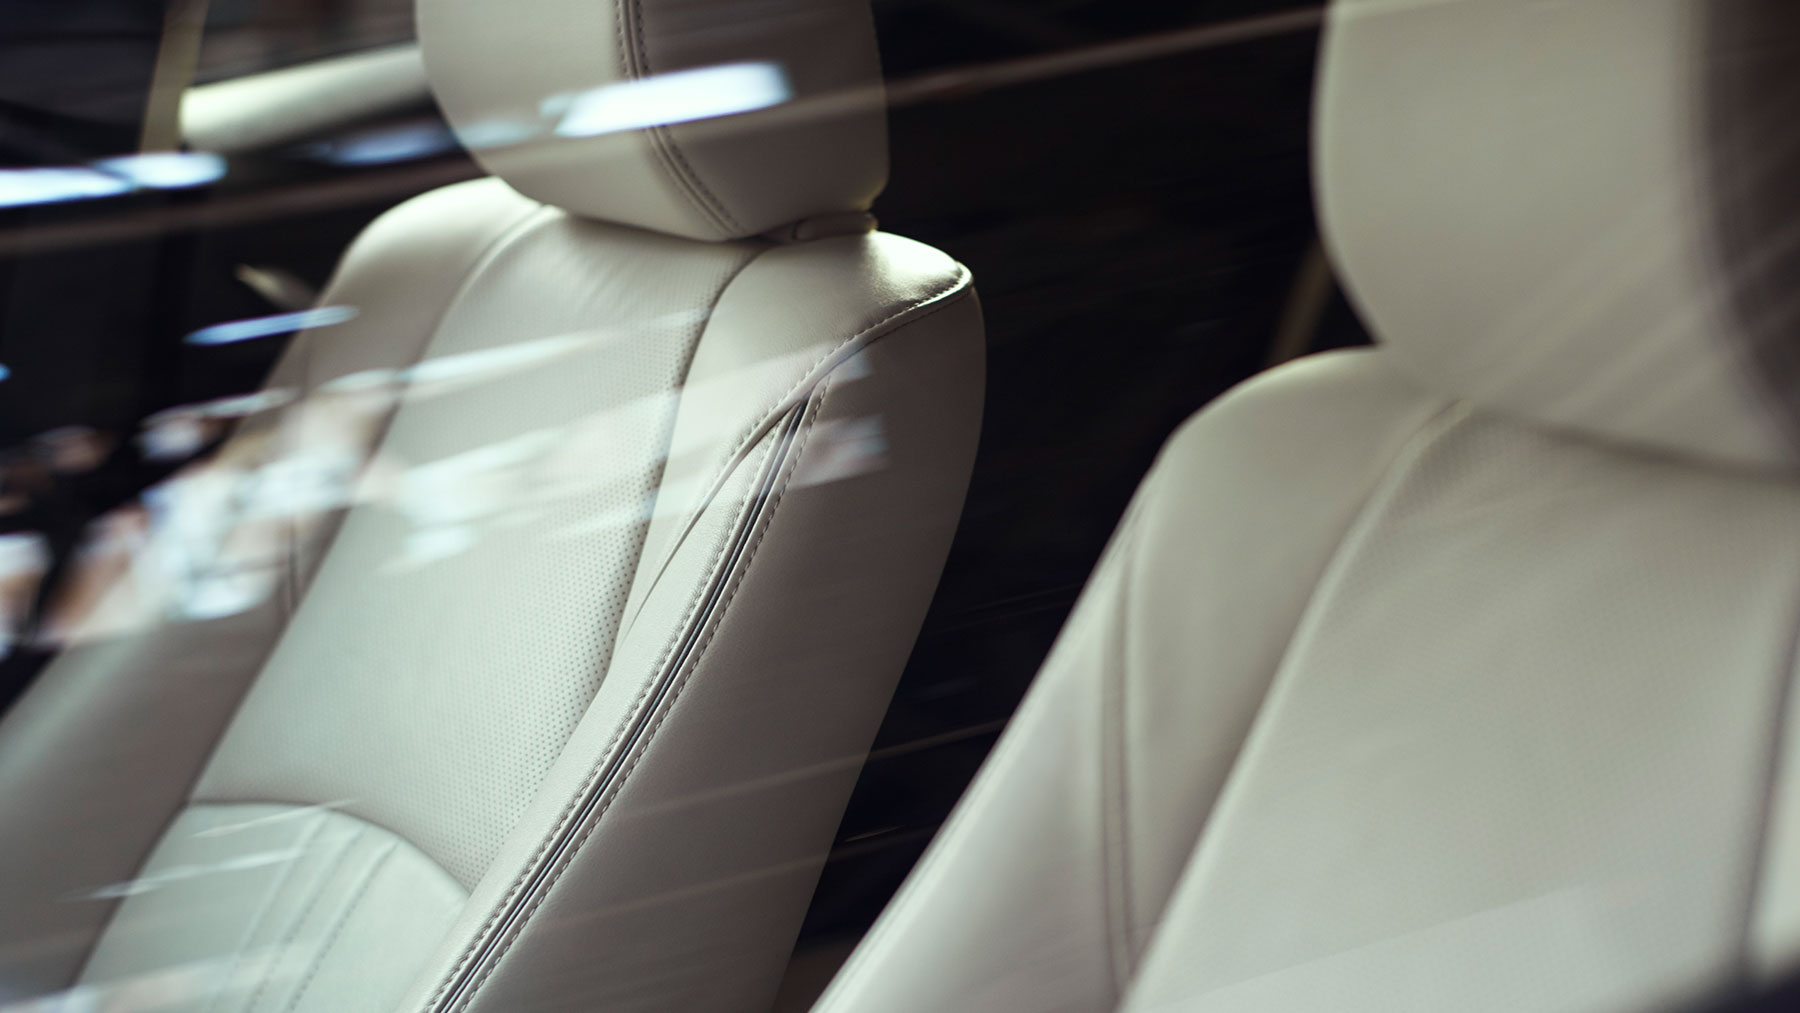 Luxurious Seating Options in the 2019 Mazda CX-3